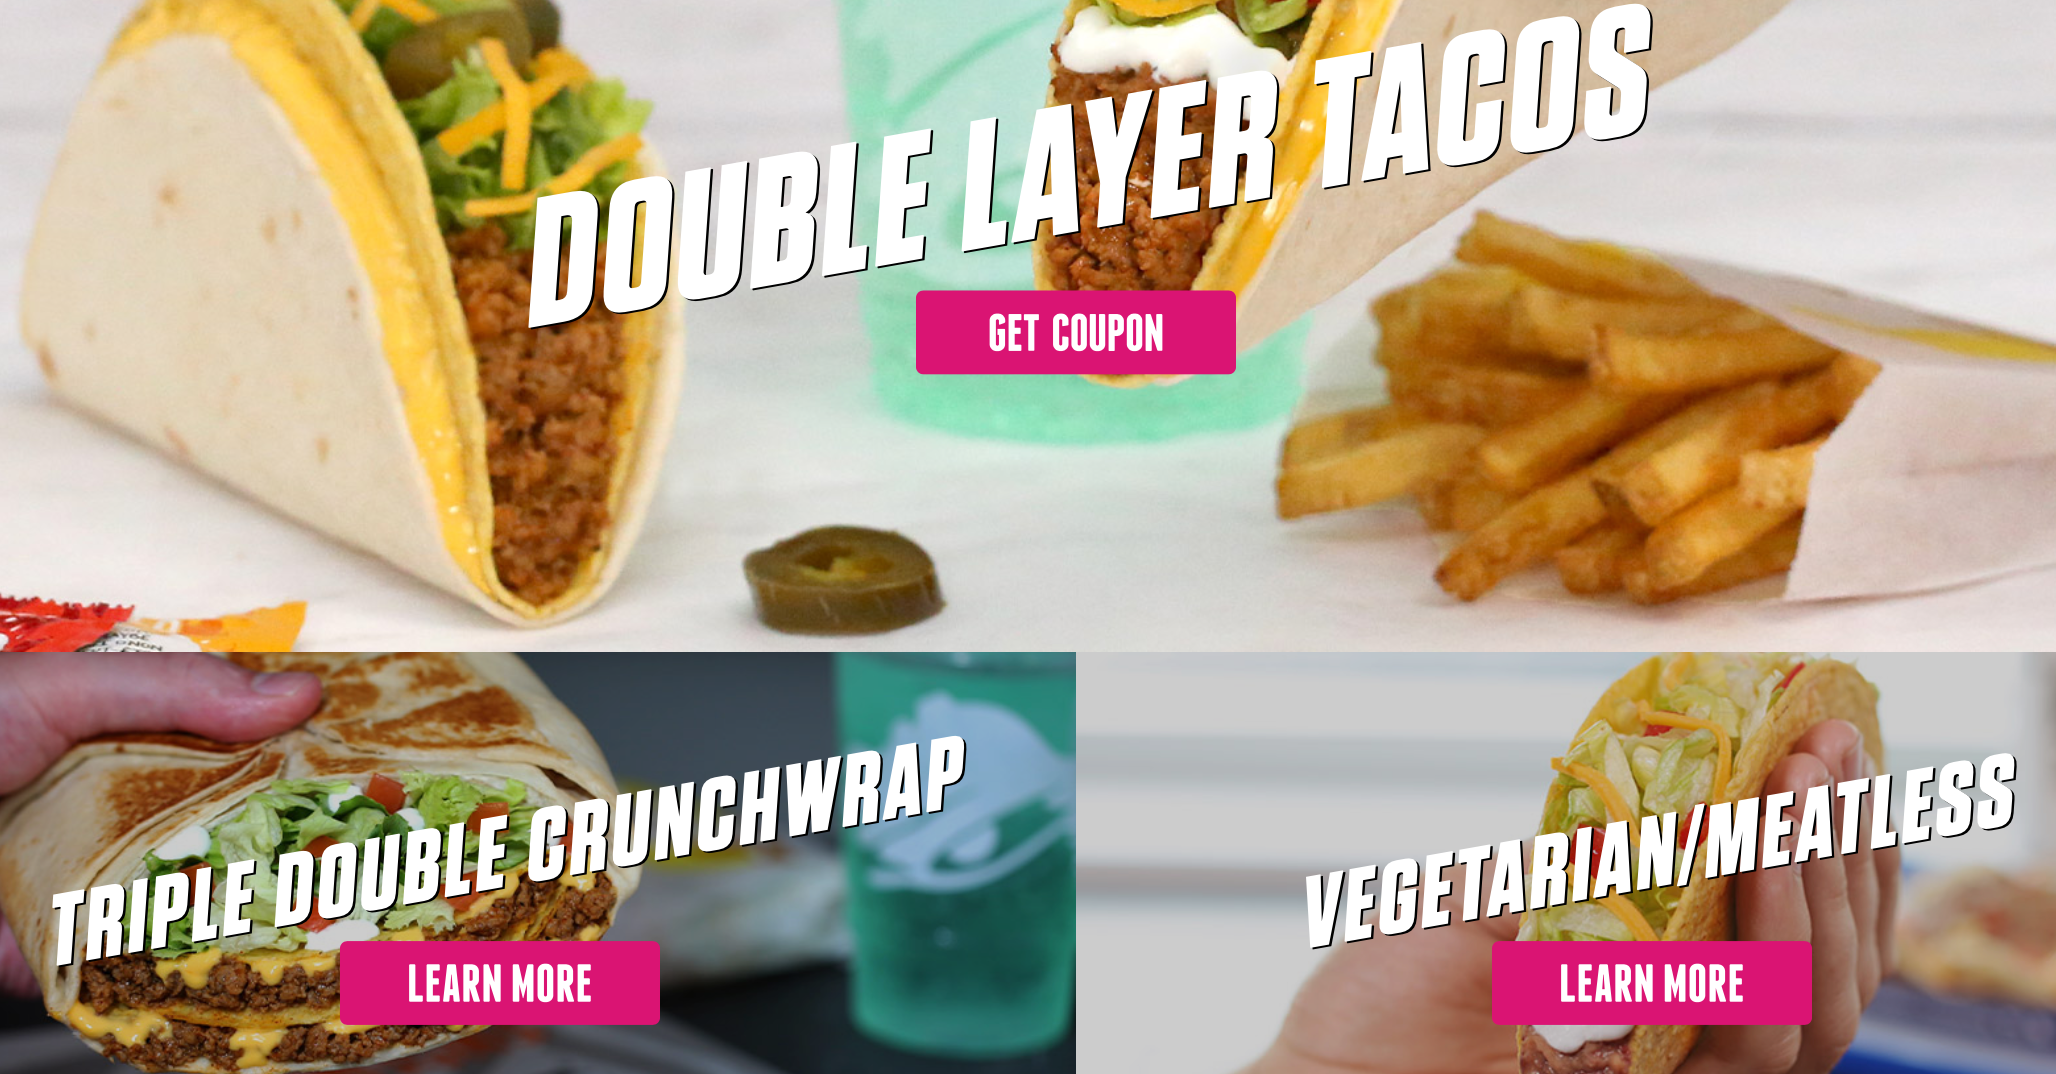 Trump's booming economy spurs Taco Bell's $100K manager search